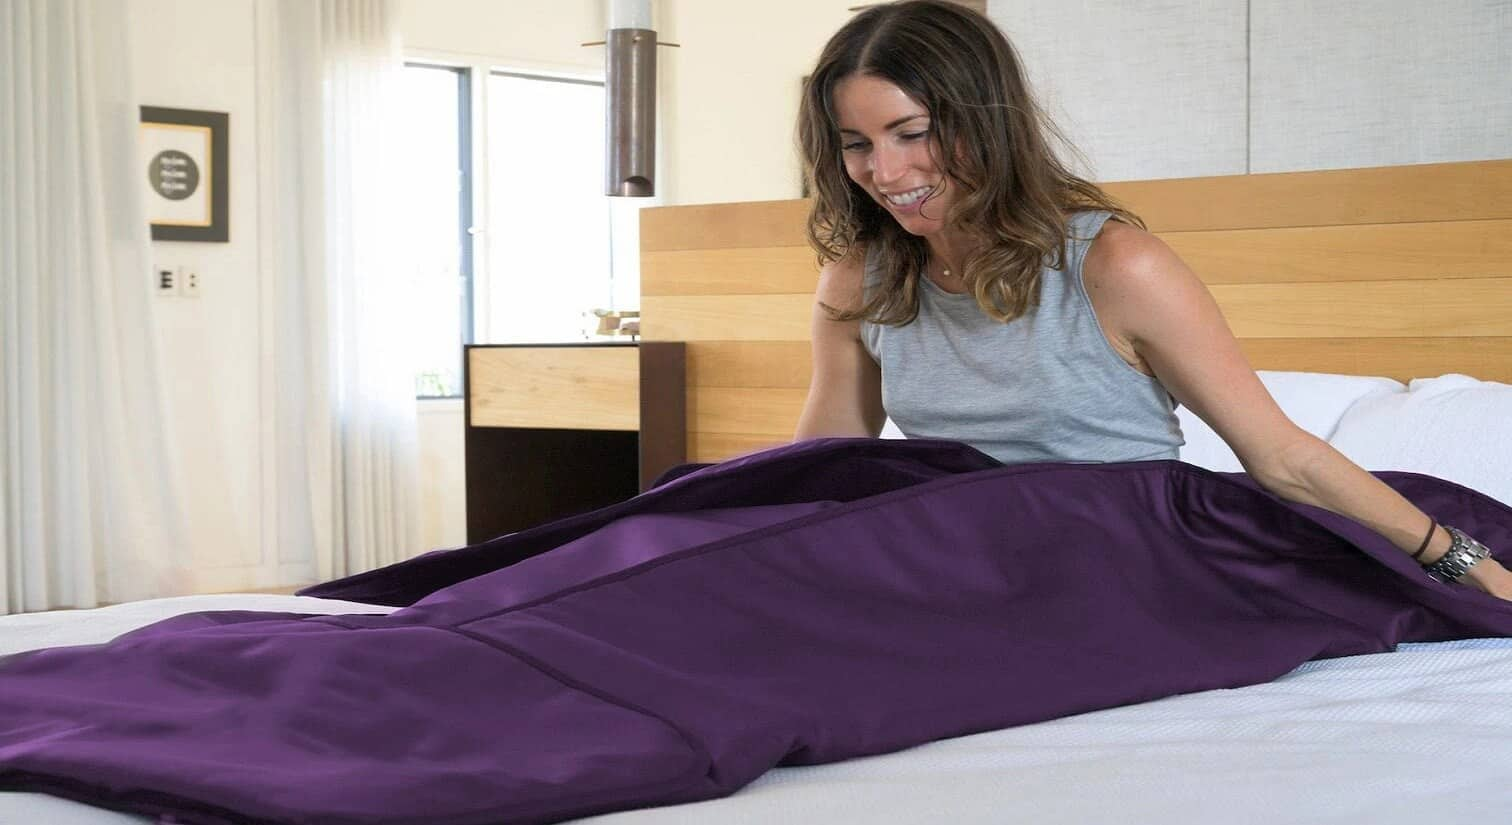 This Blanket Is a Portable Sauna and Can De-Stress You From Your Workday